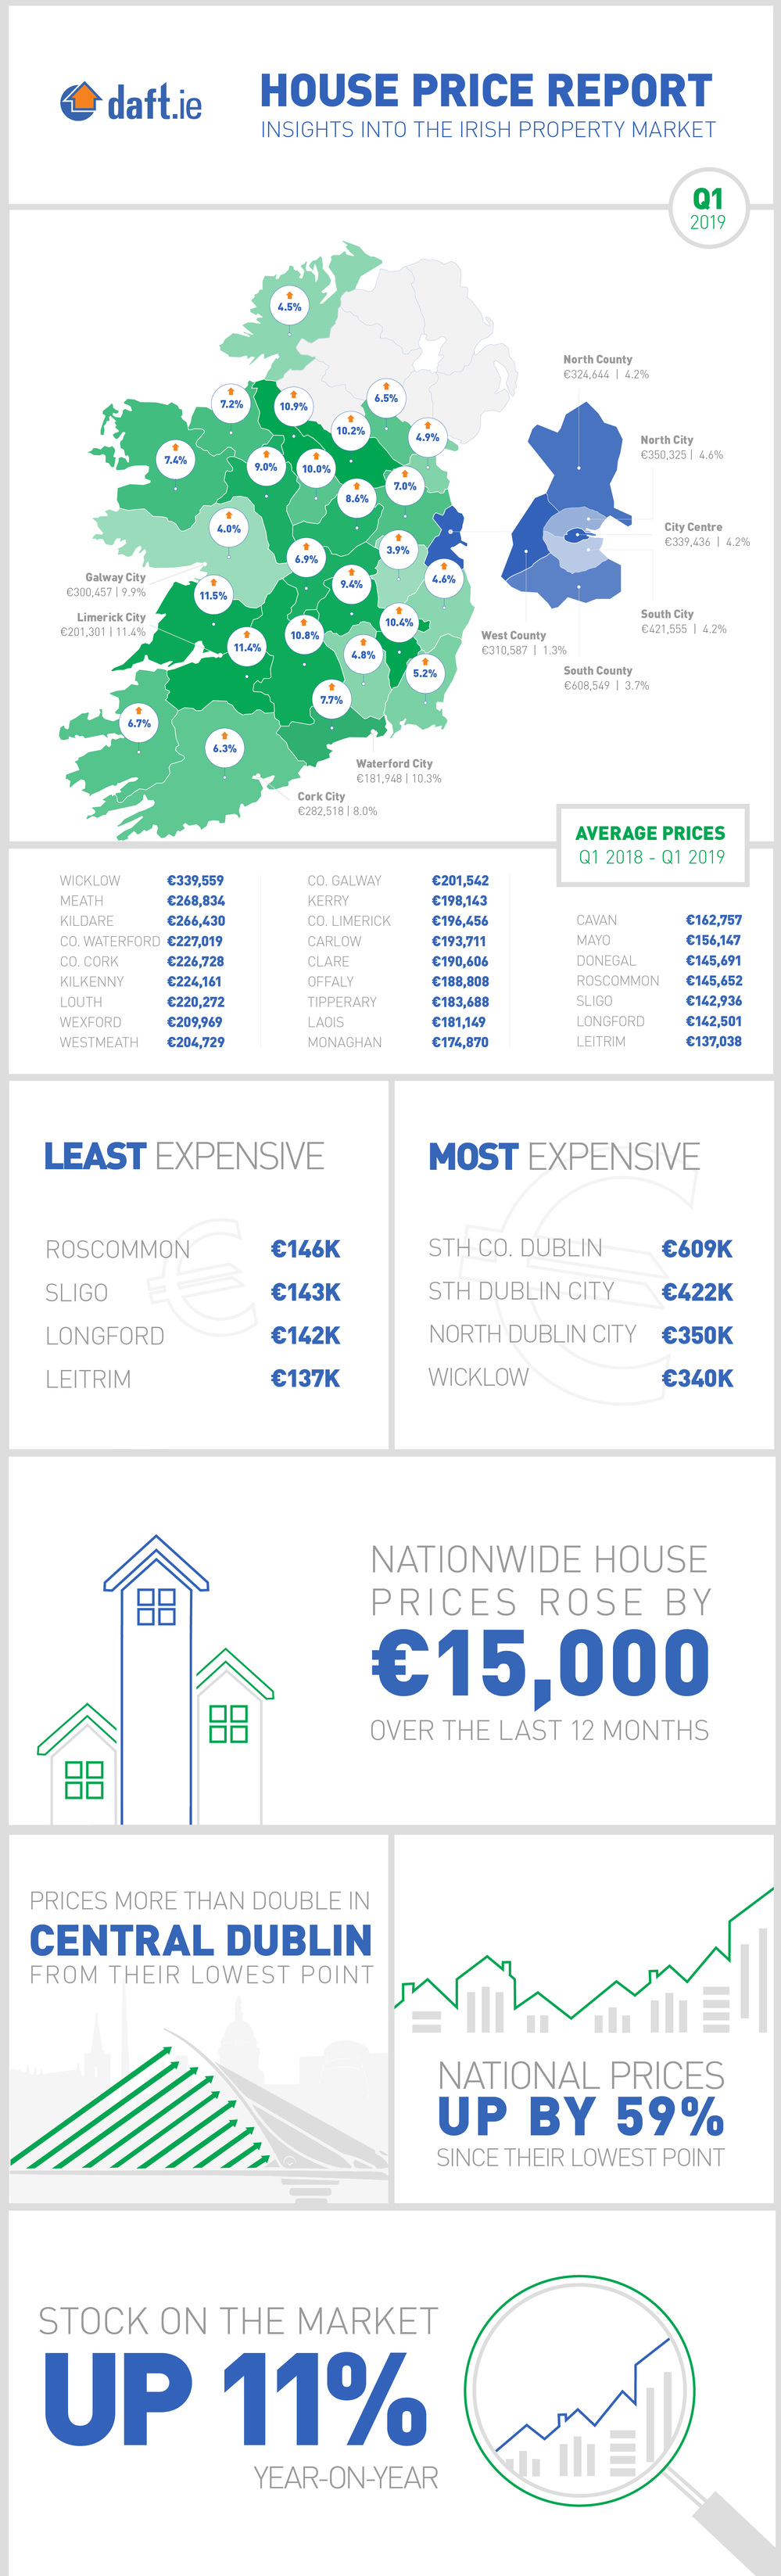 Q1-2019-Infographic_HOUSE-PRICE-REPORT-FINAL.jpg